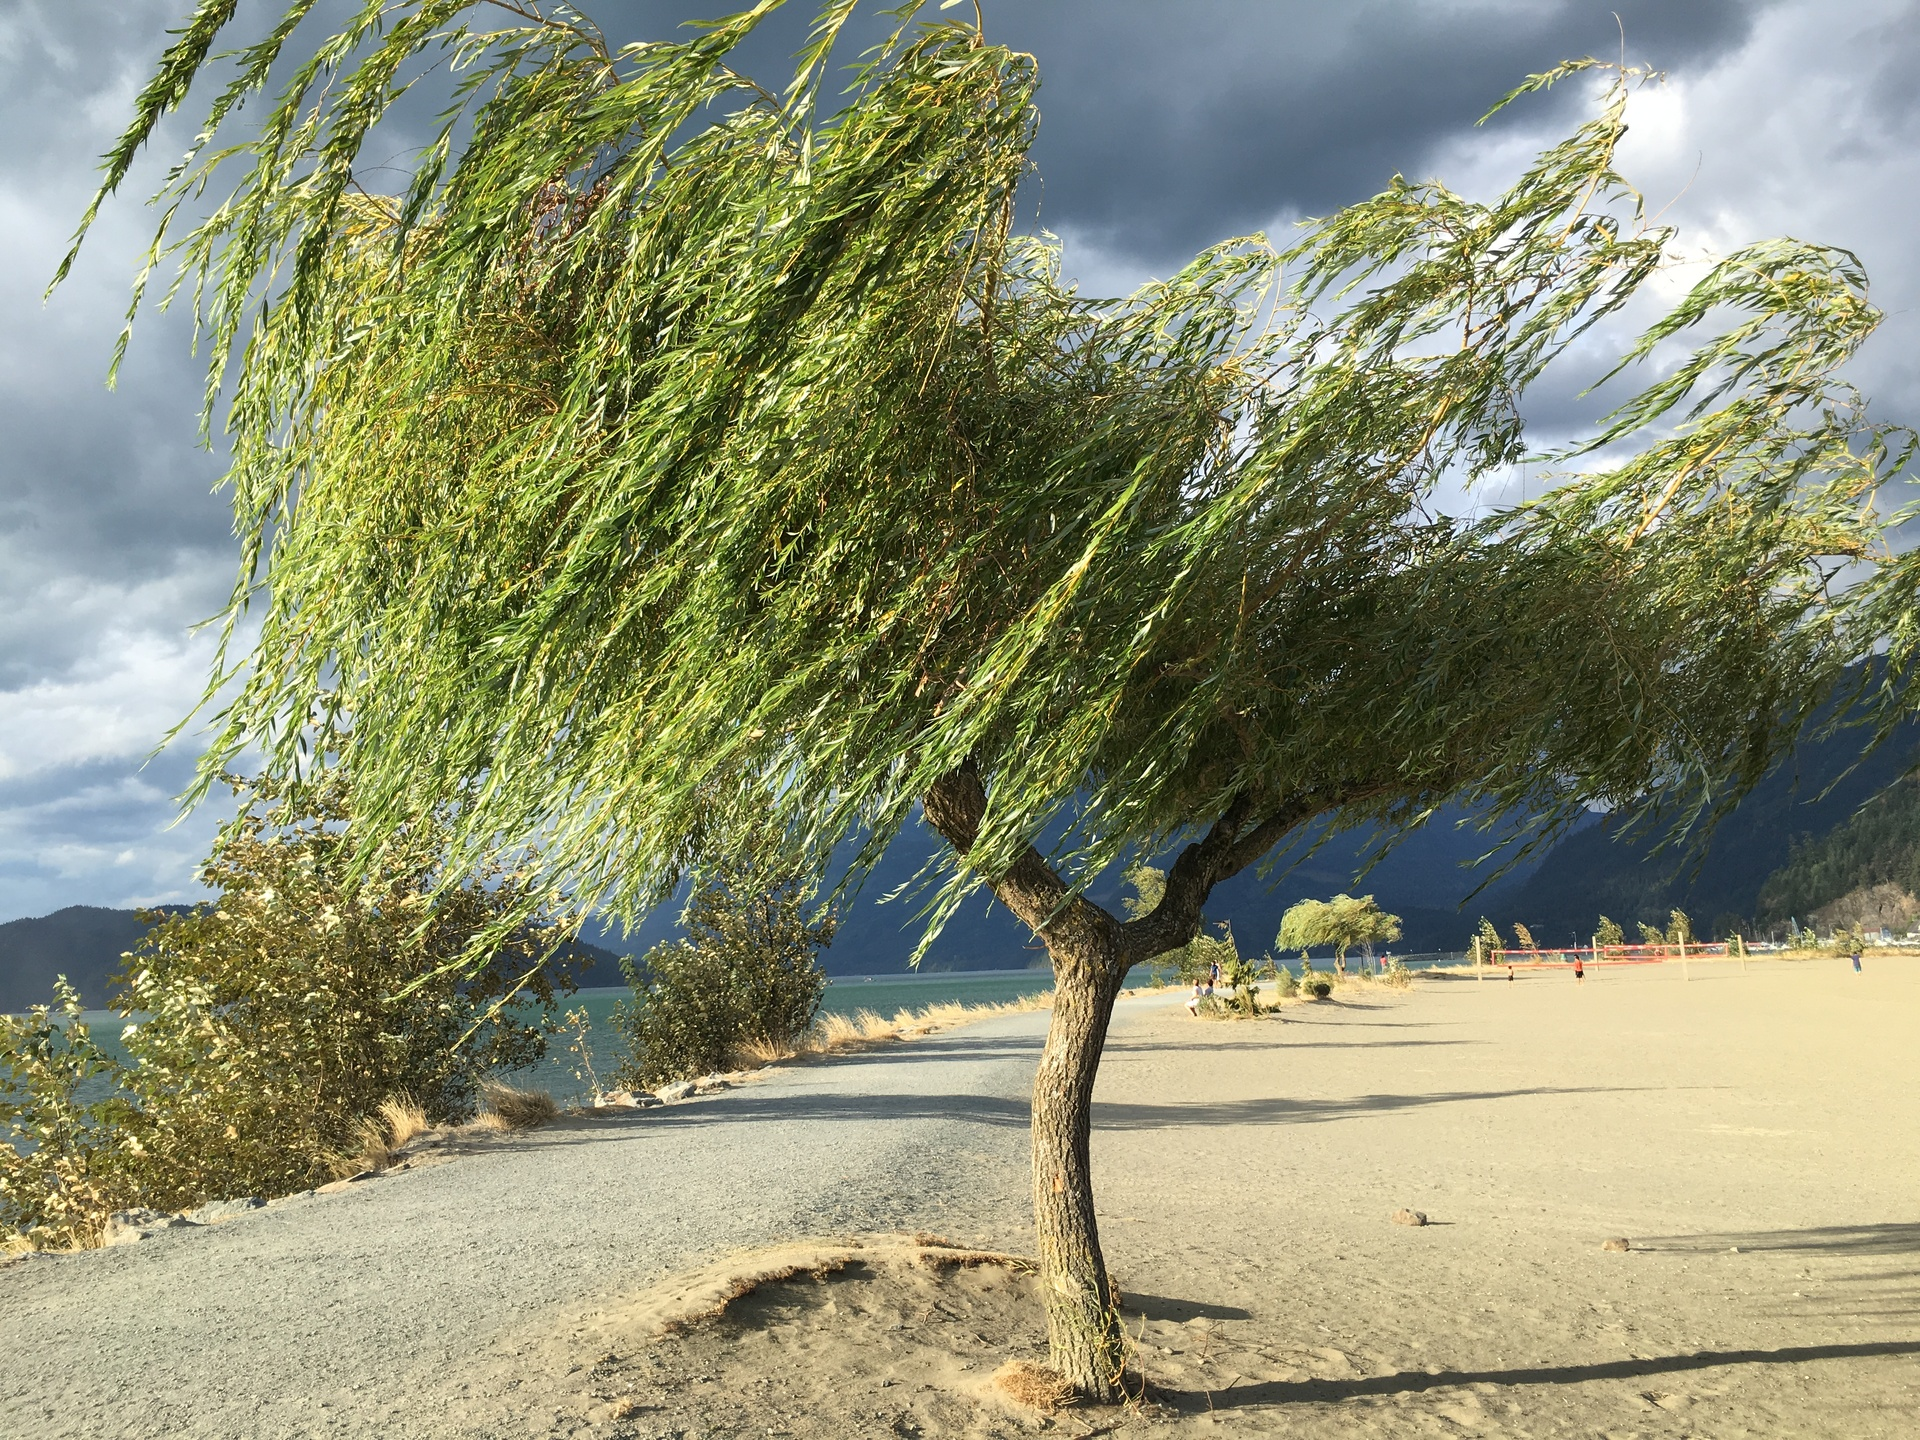 Single tree on landscape | wind, single, motion, lakeshore